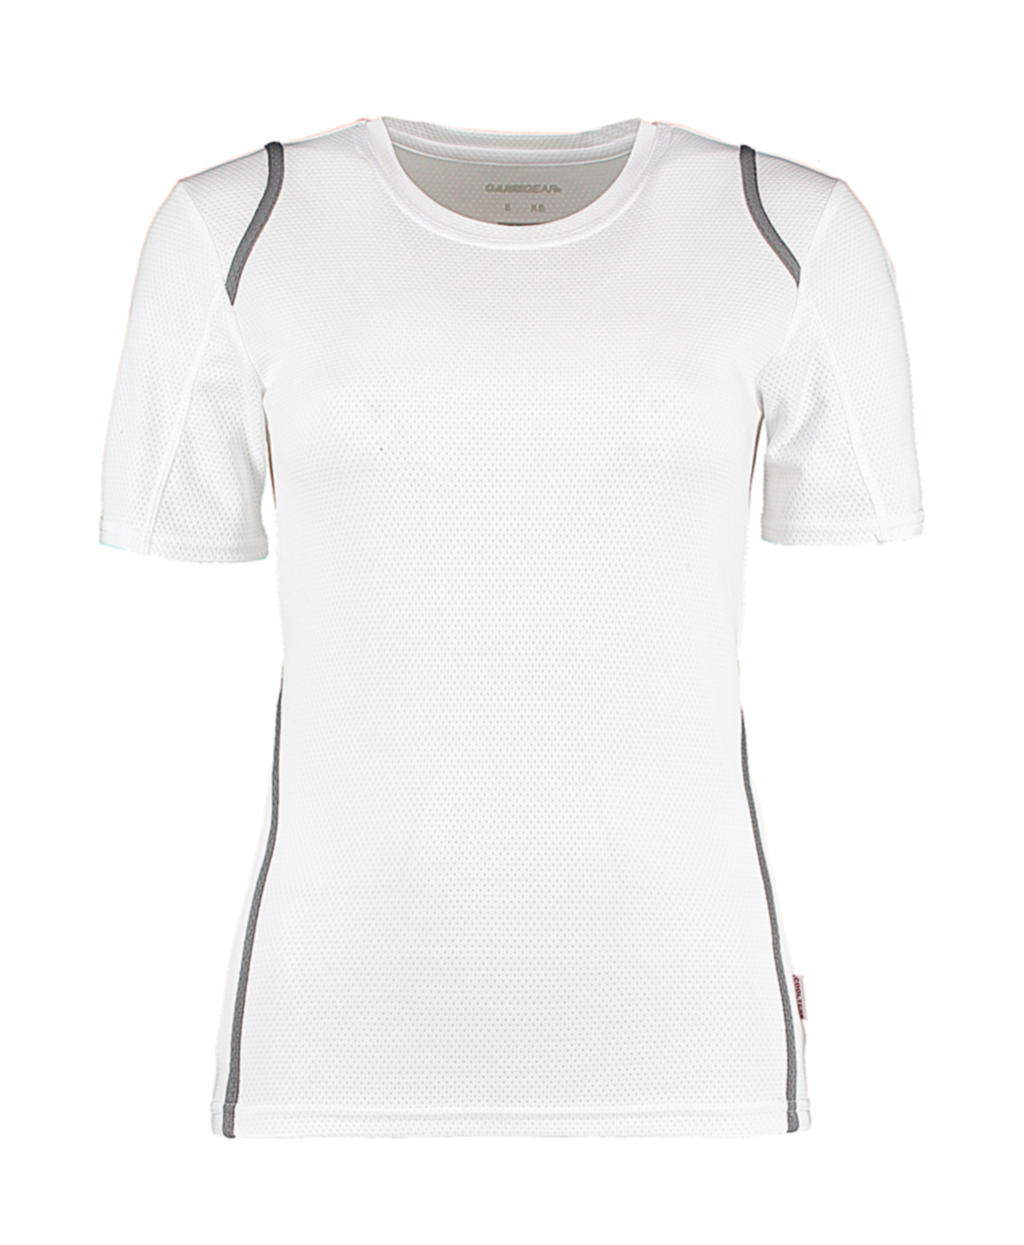 Lady Gamegear Cooltex T-Shirt